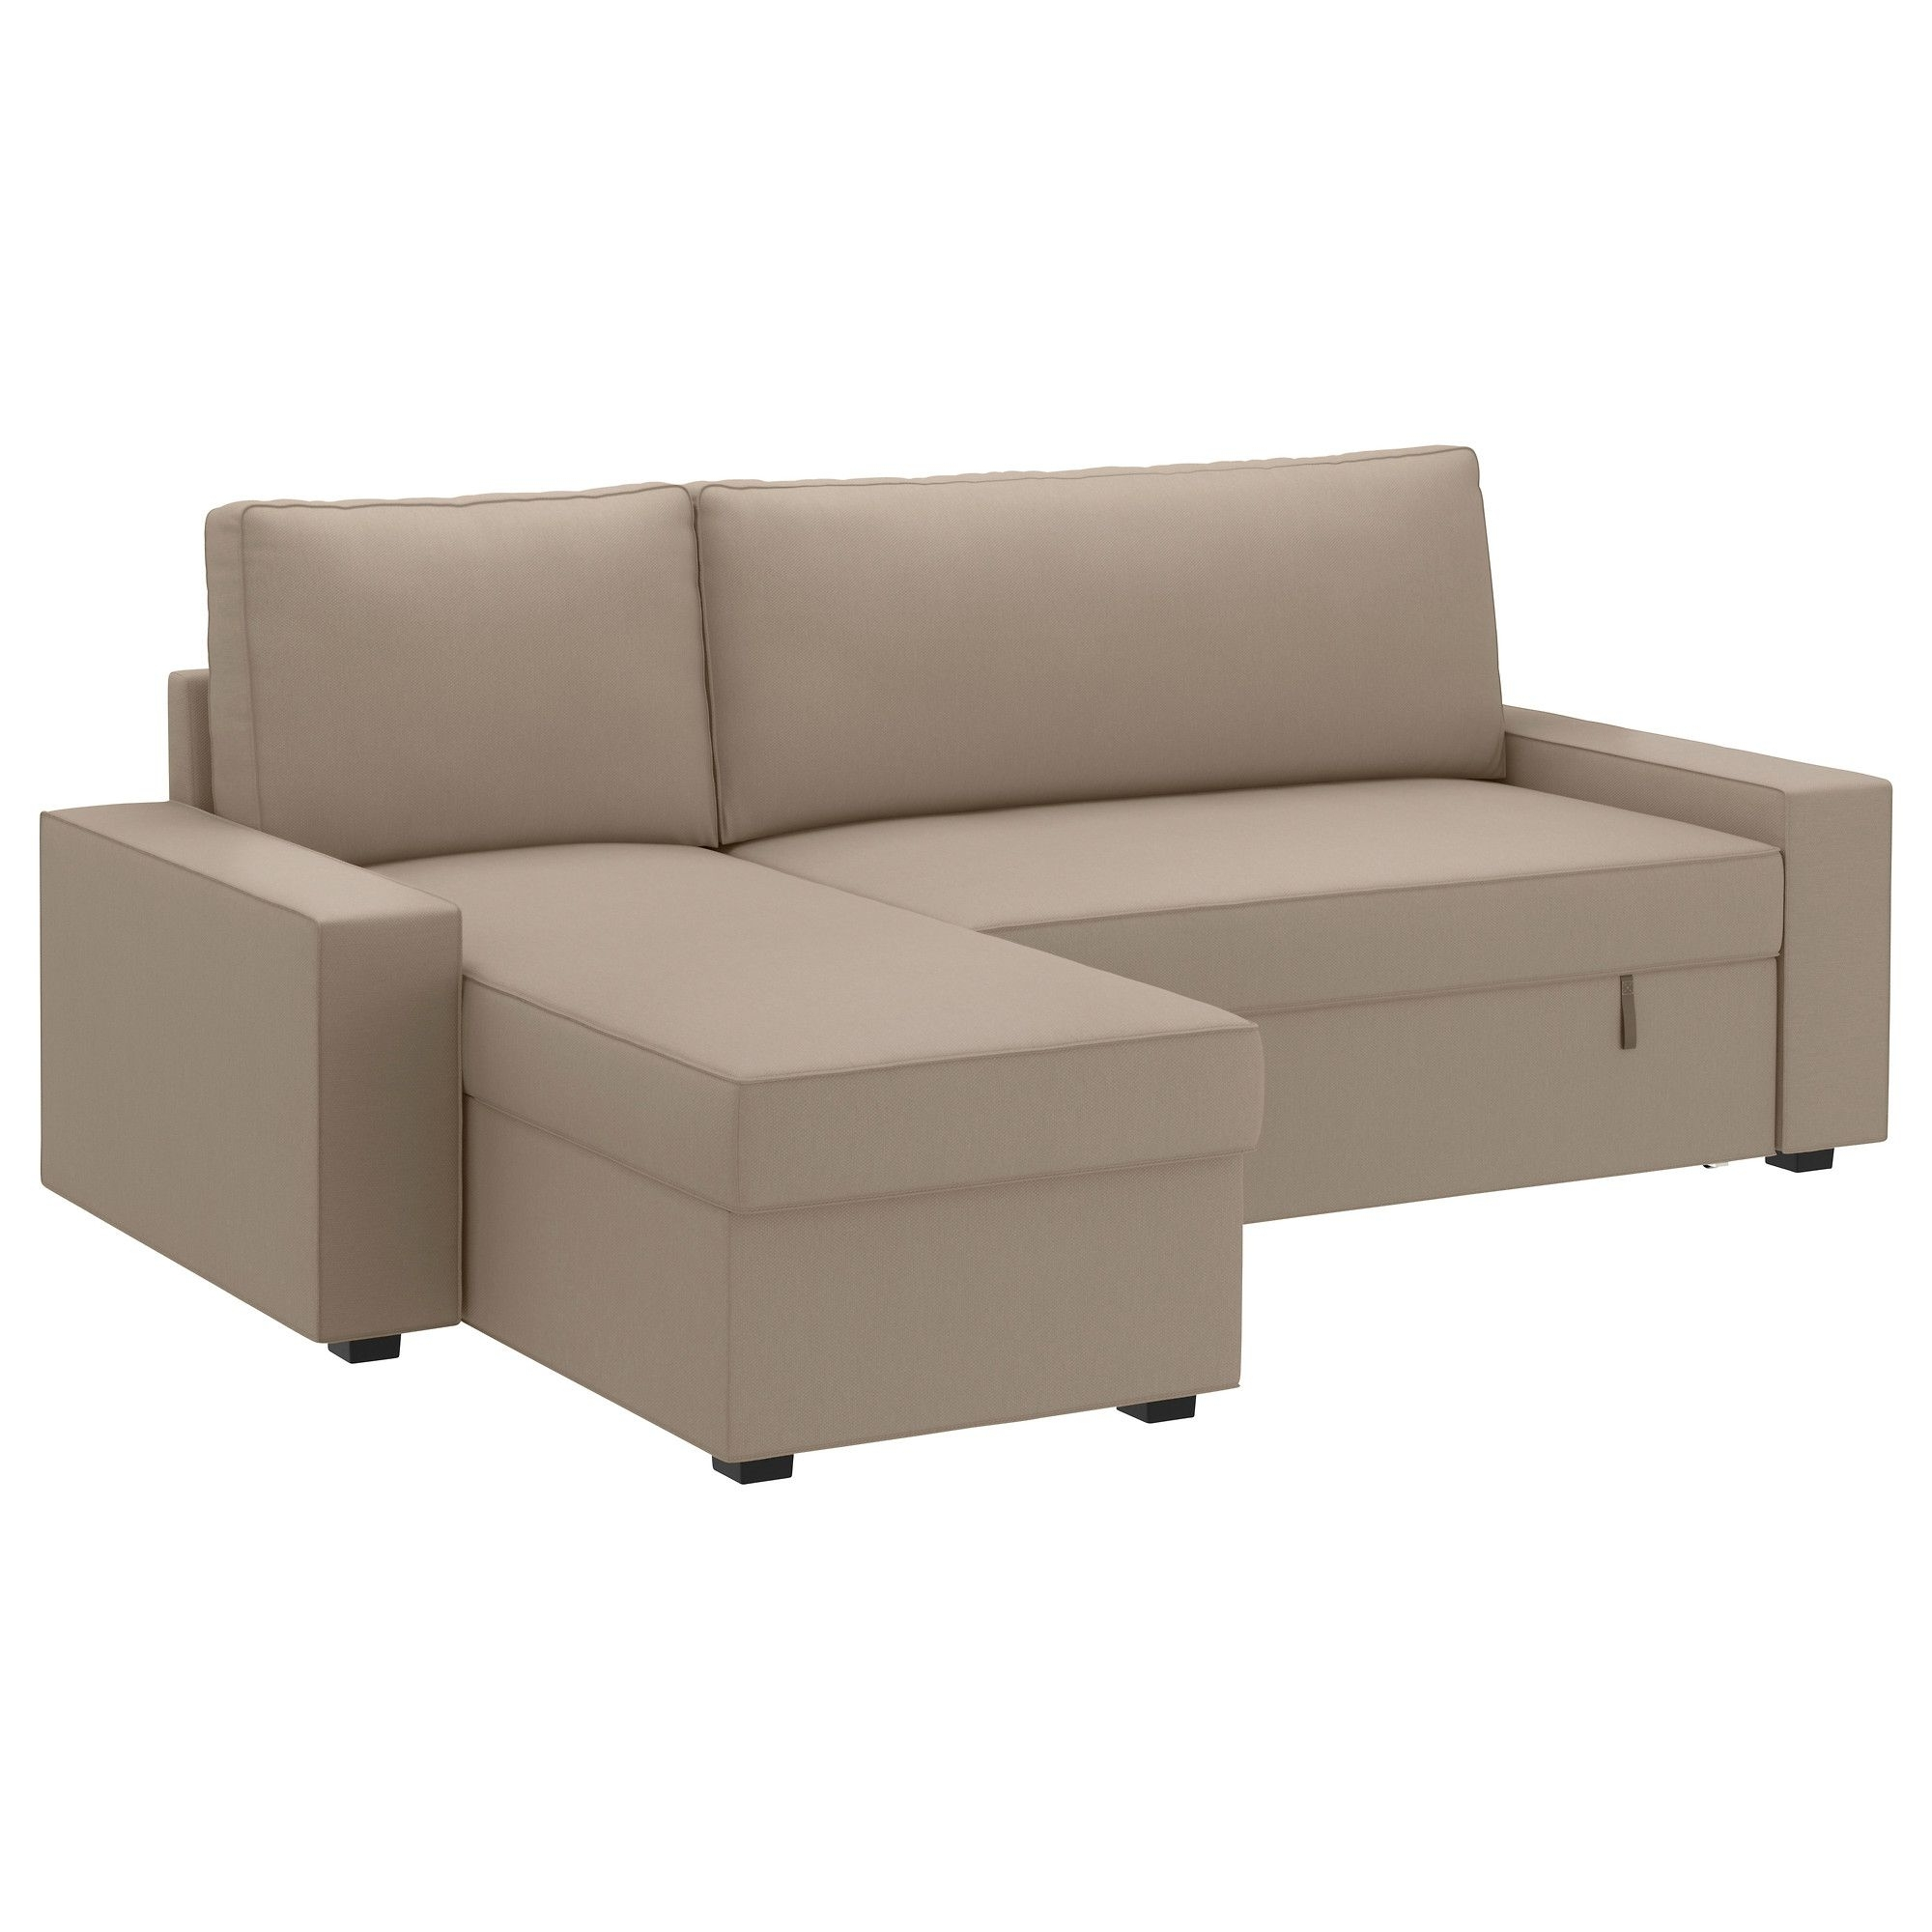 Ikea Vilasund Sofa Bed Top 15 Of Sofa Beds With Chaise